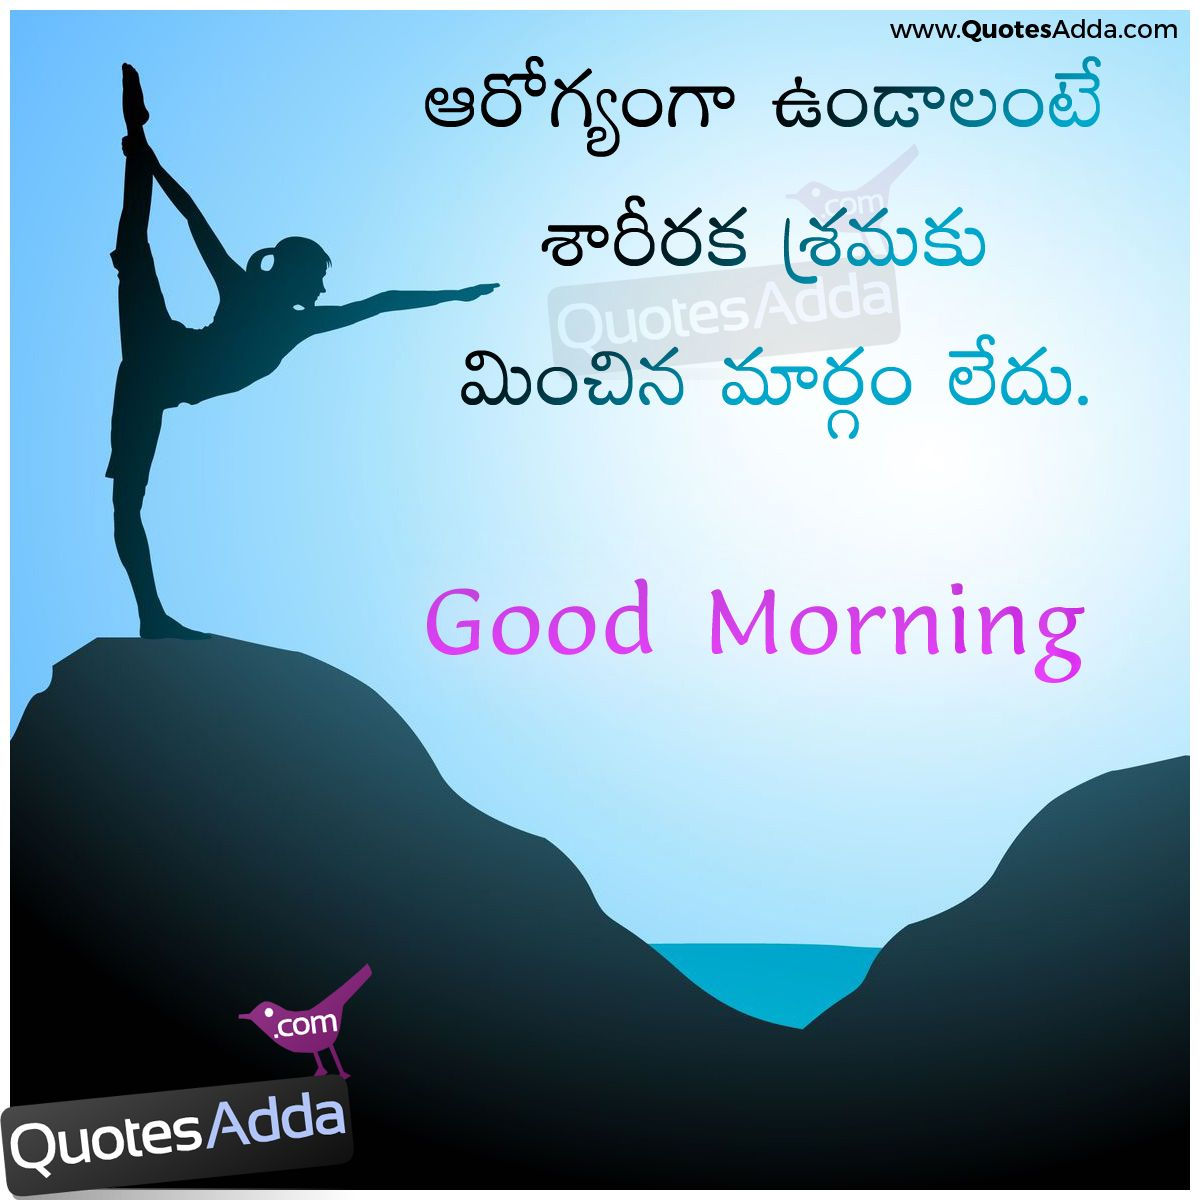 Telugu Most Unseen Good Morning Greetings And Messages Funny Good Morning Images Good Morning Messages Morning Messages